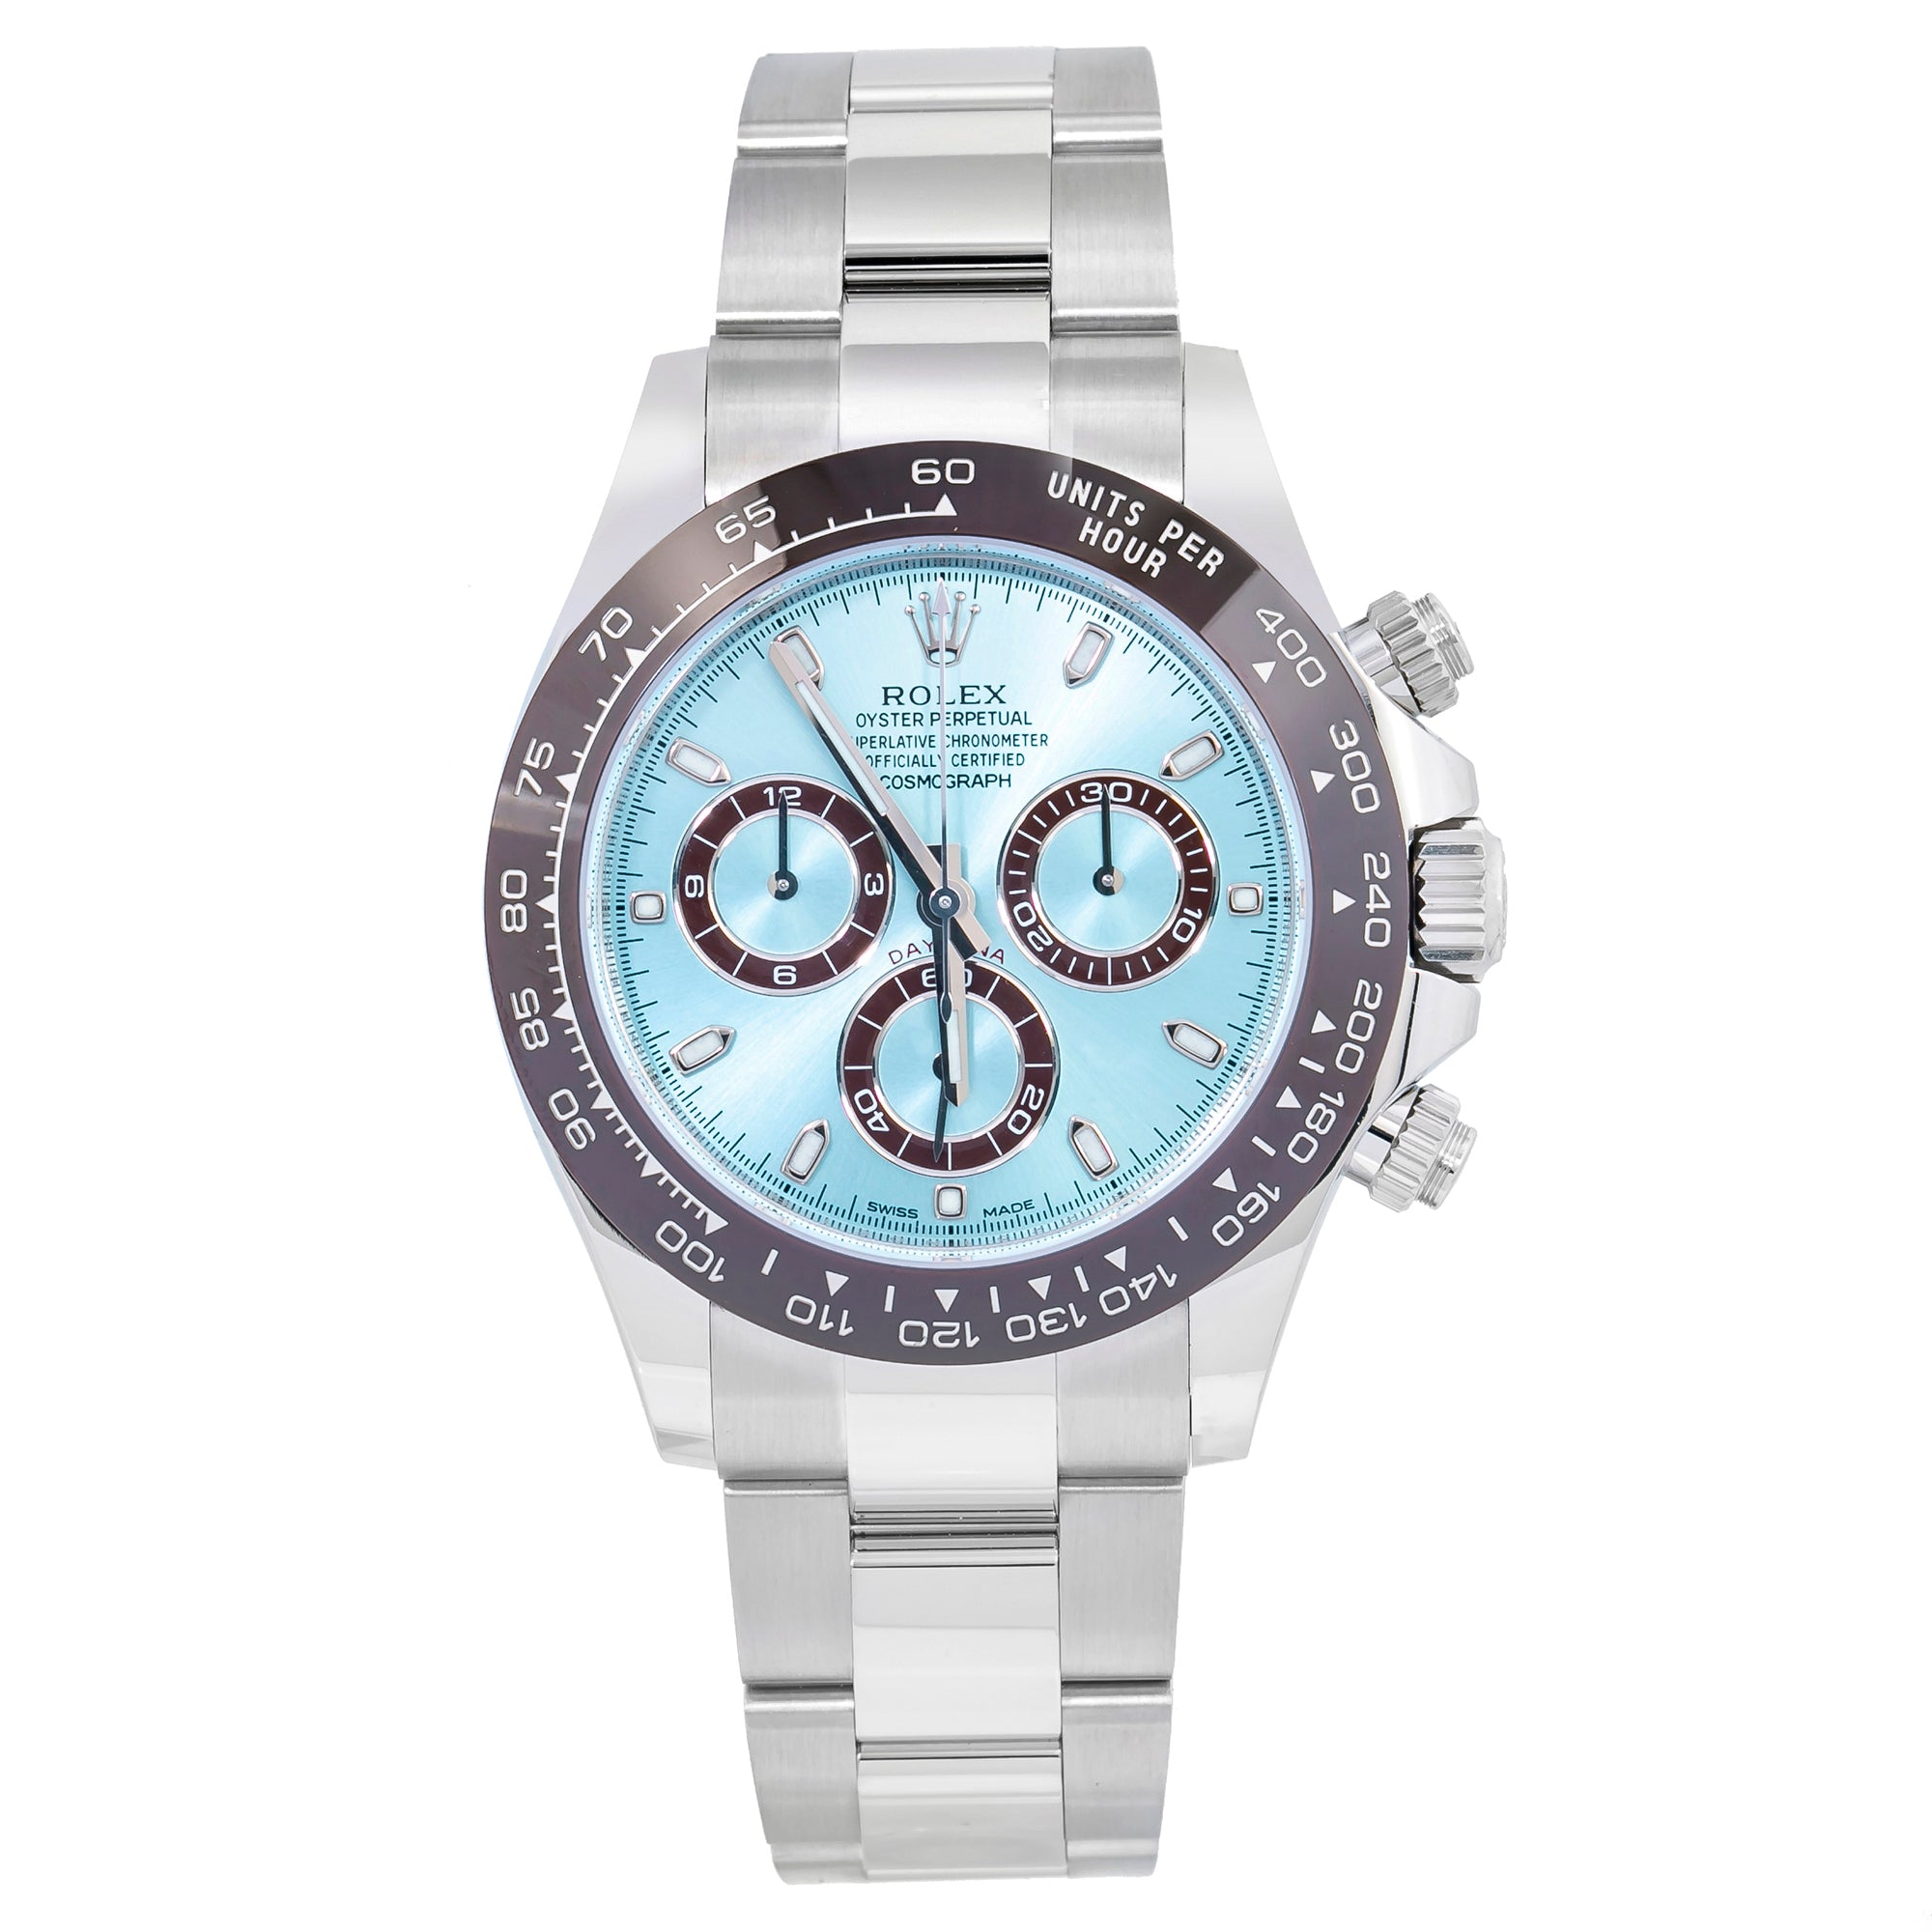 Rolex Daytona 116506 40MM Blue Dial With Platinum Bracelet